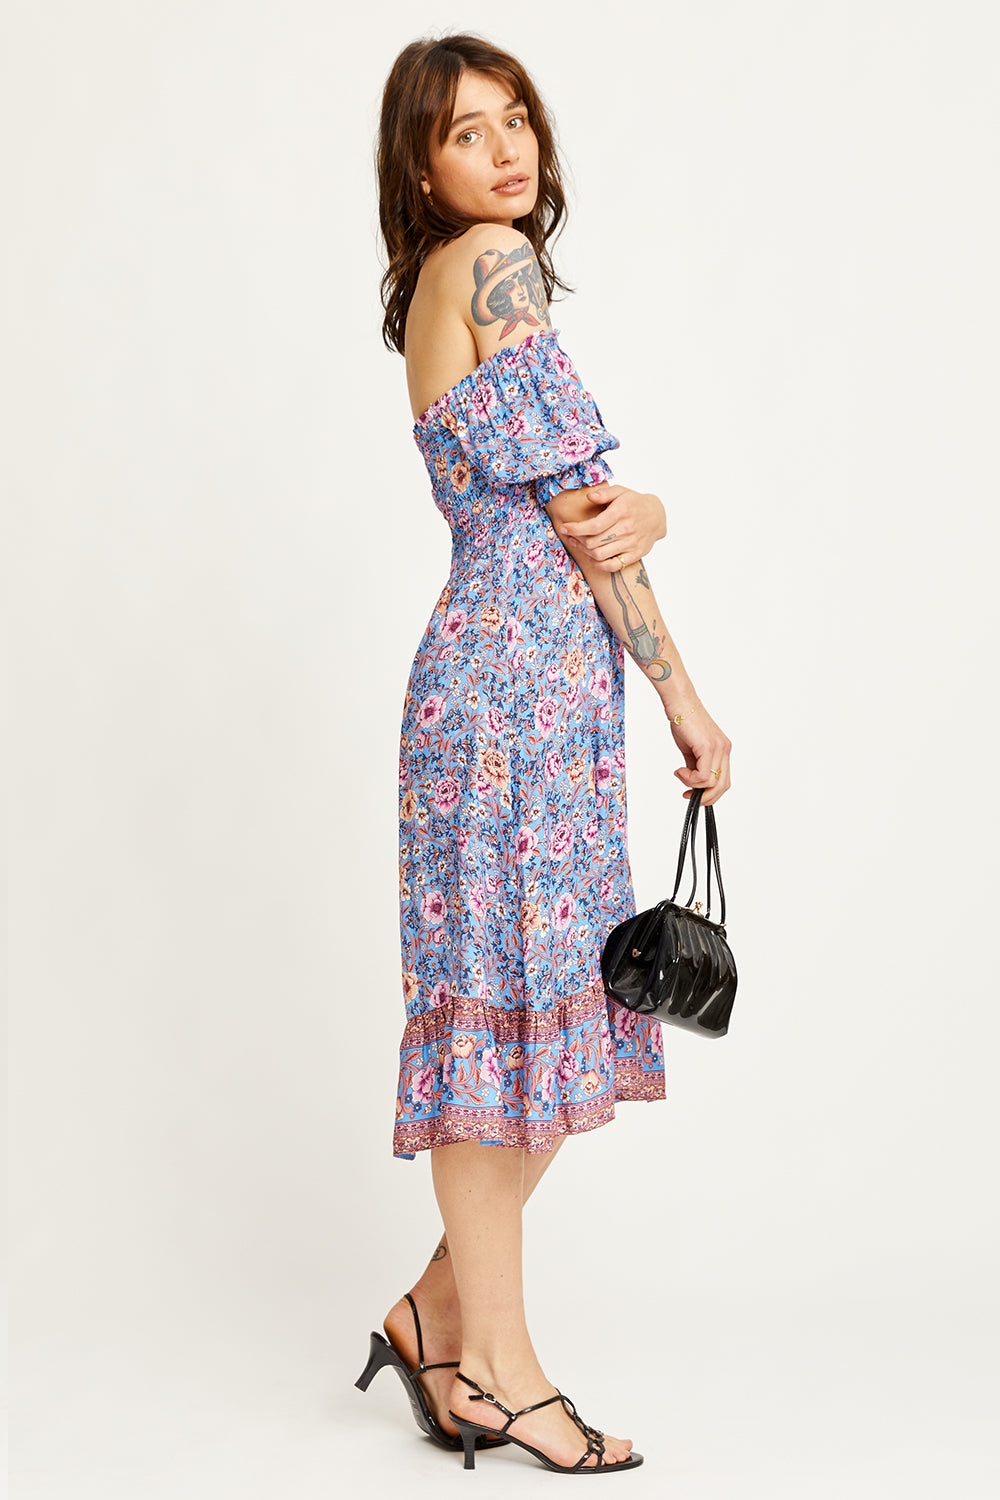 Juliette Shirred Midi Dress in Bluebelle